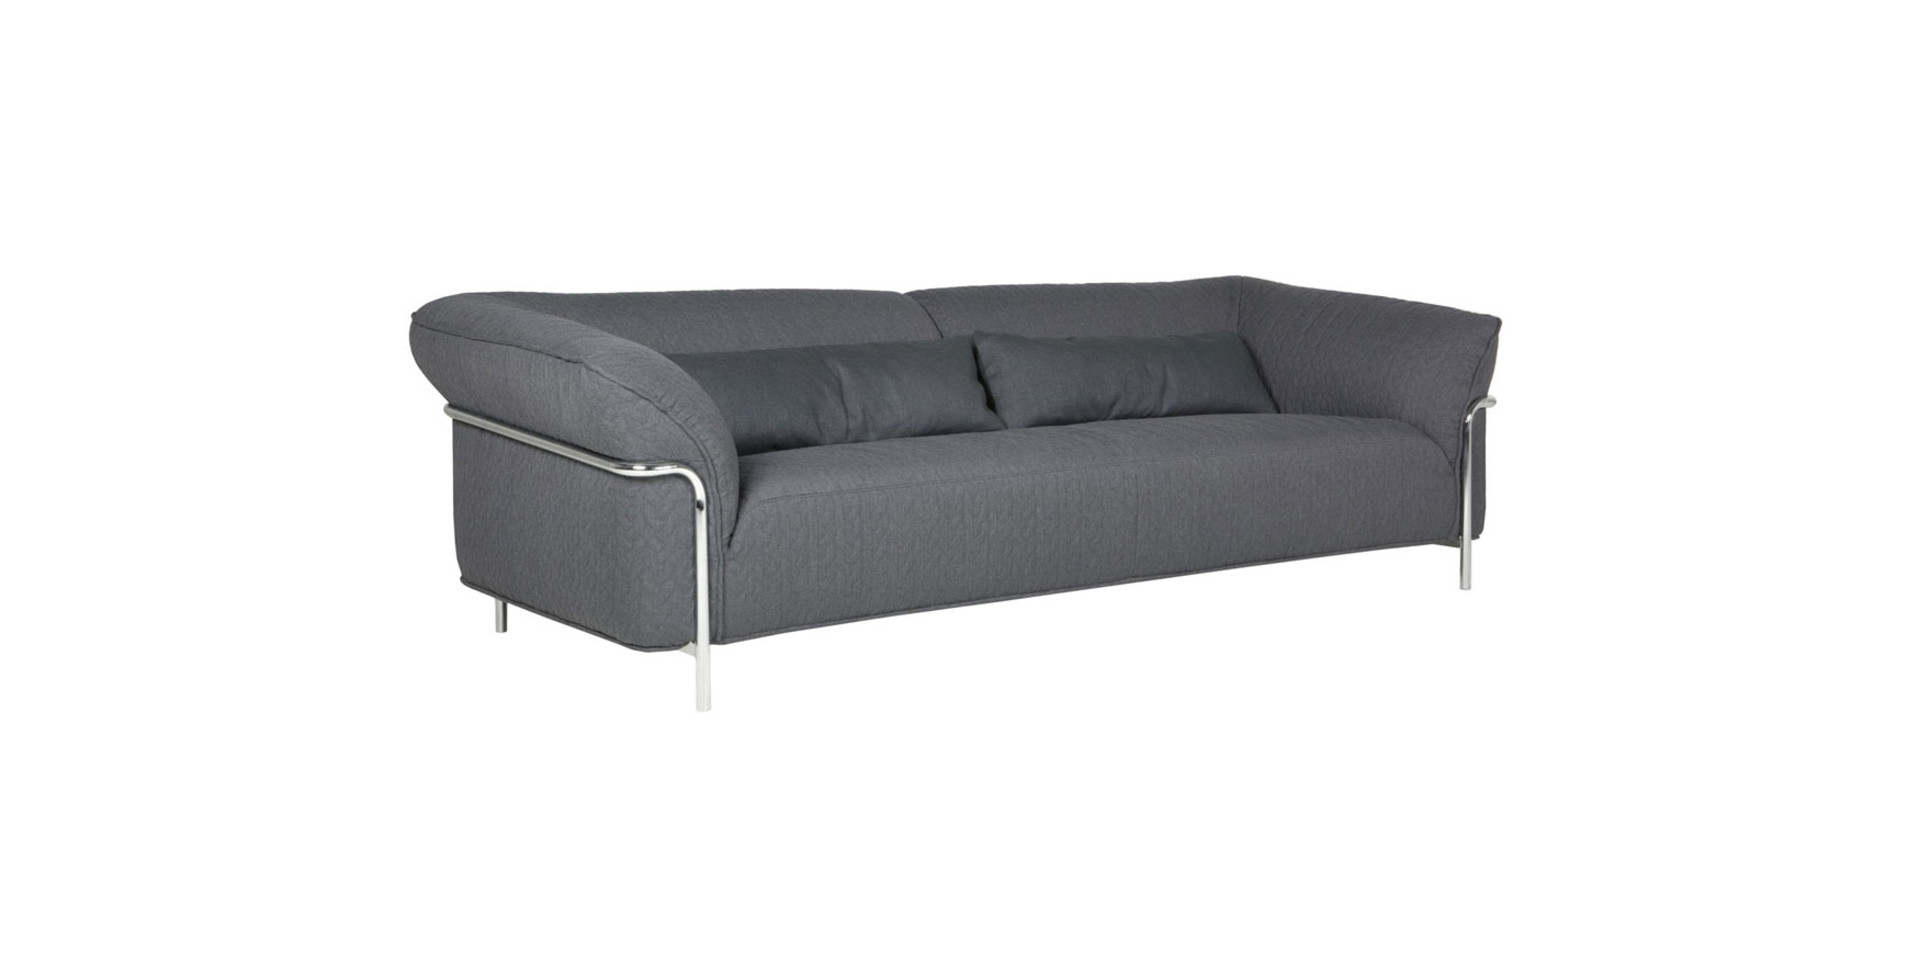 sits-doris-canape-3seater_zara15_dark_grey_2